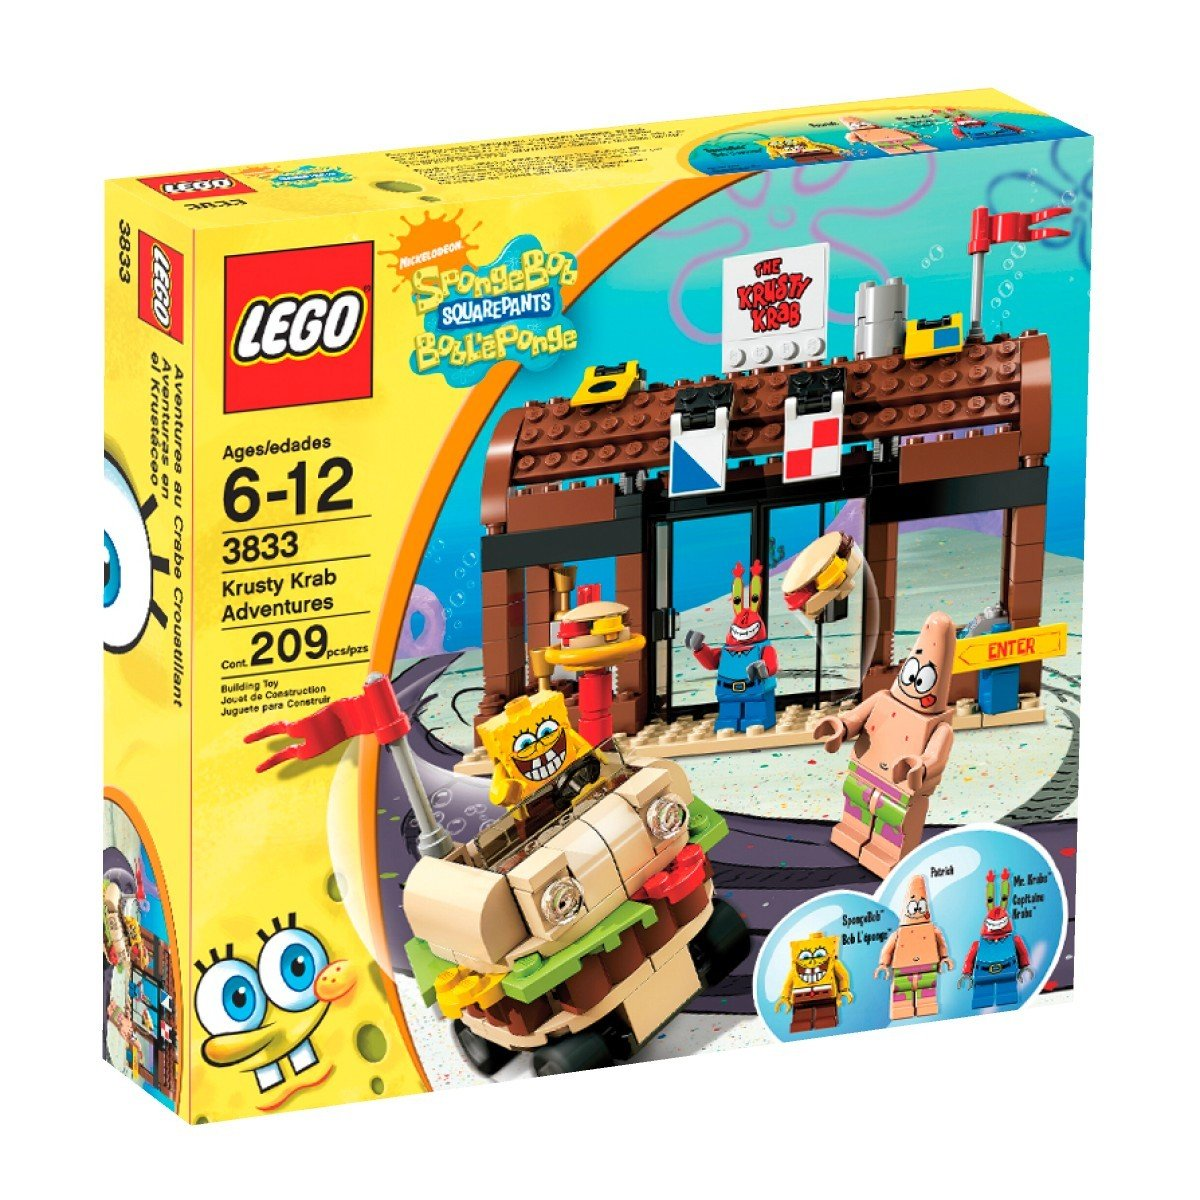 Top 9 Best LEGO Spongebob SquarePants Sets Reviews in 2019 1